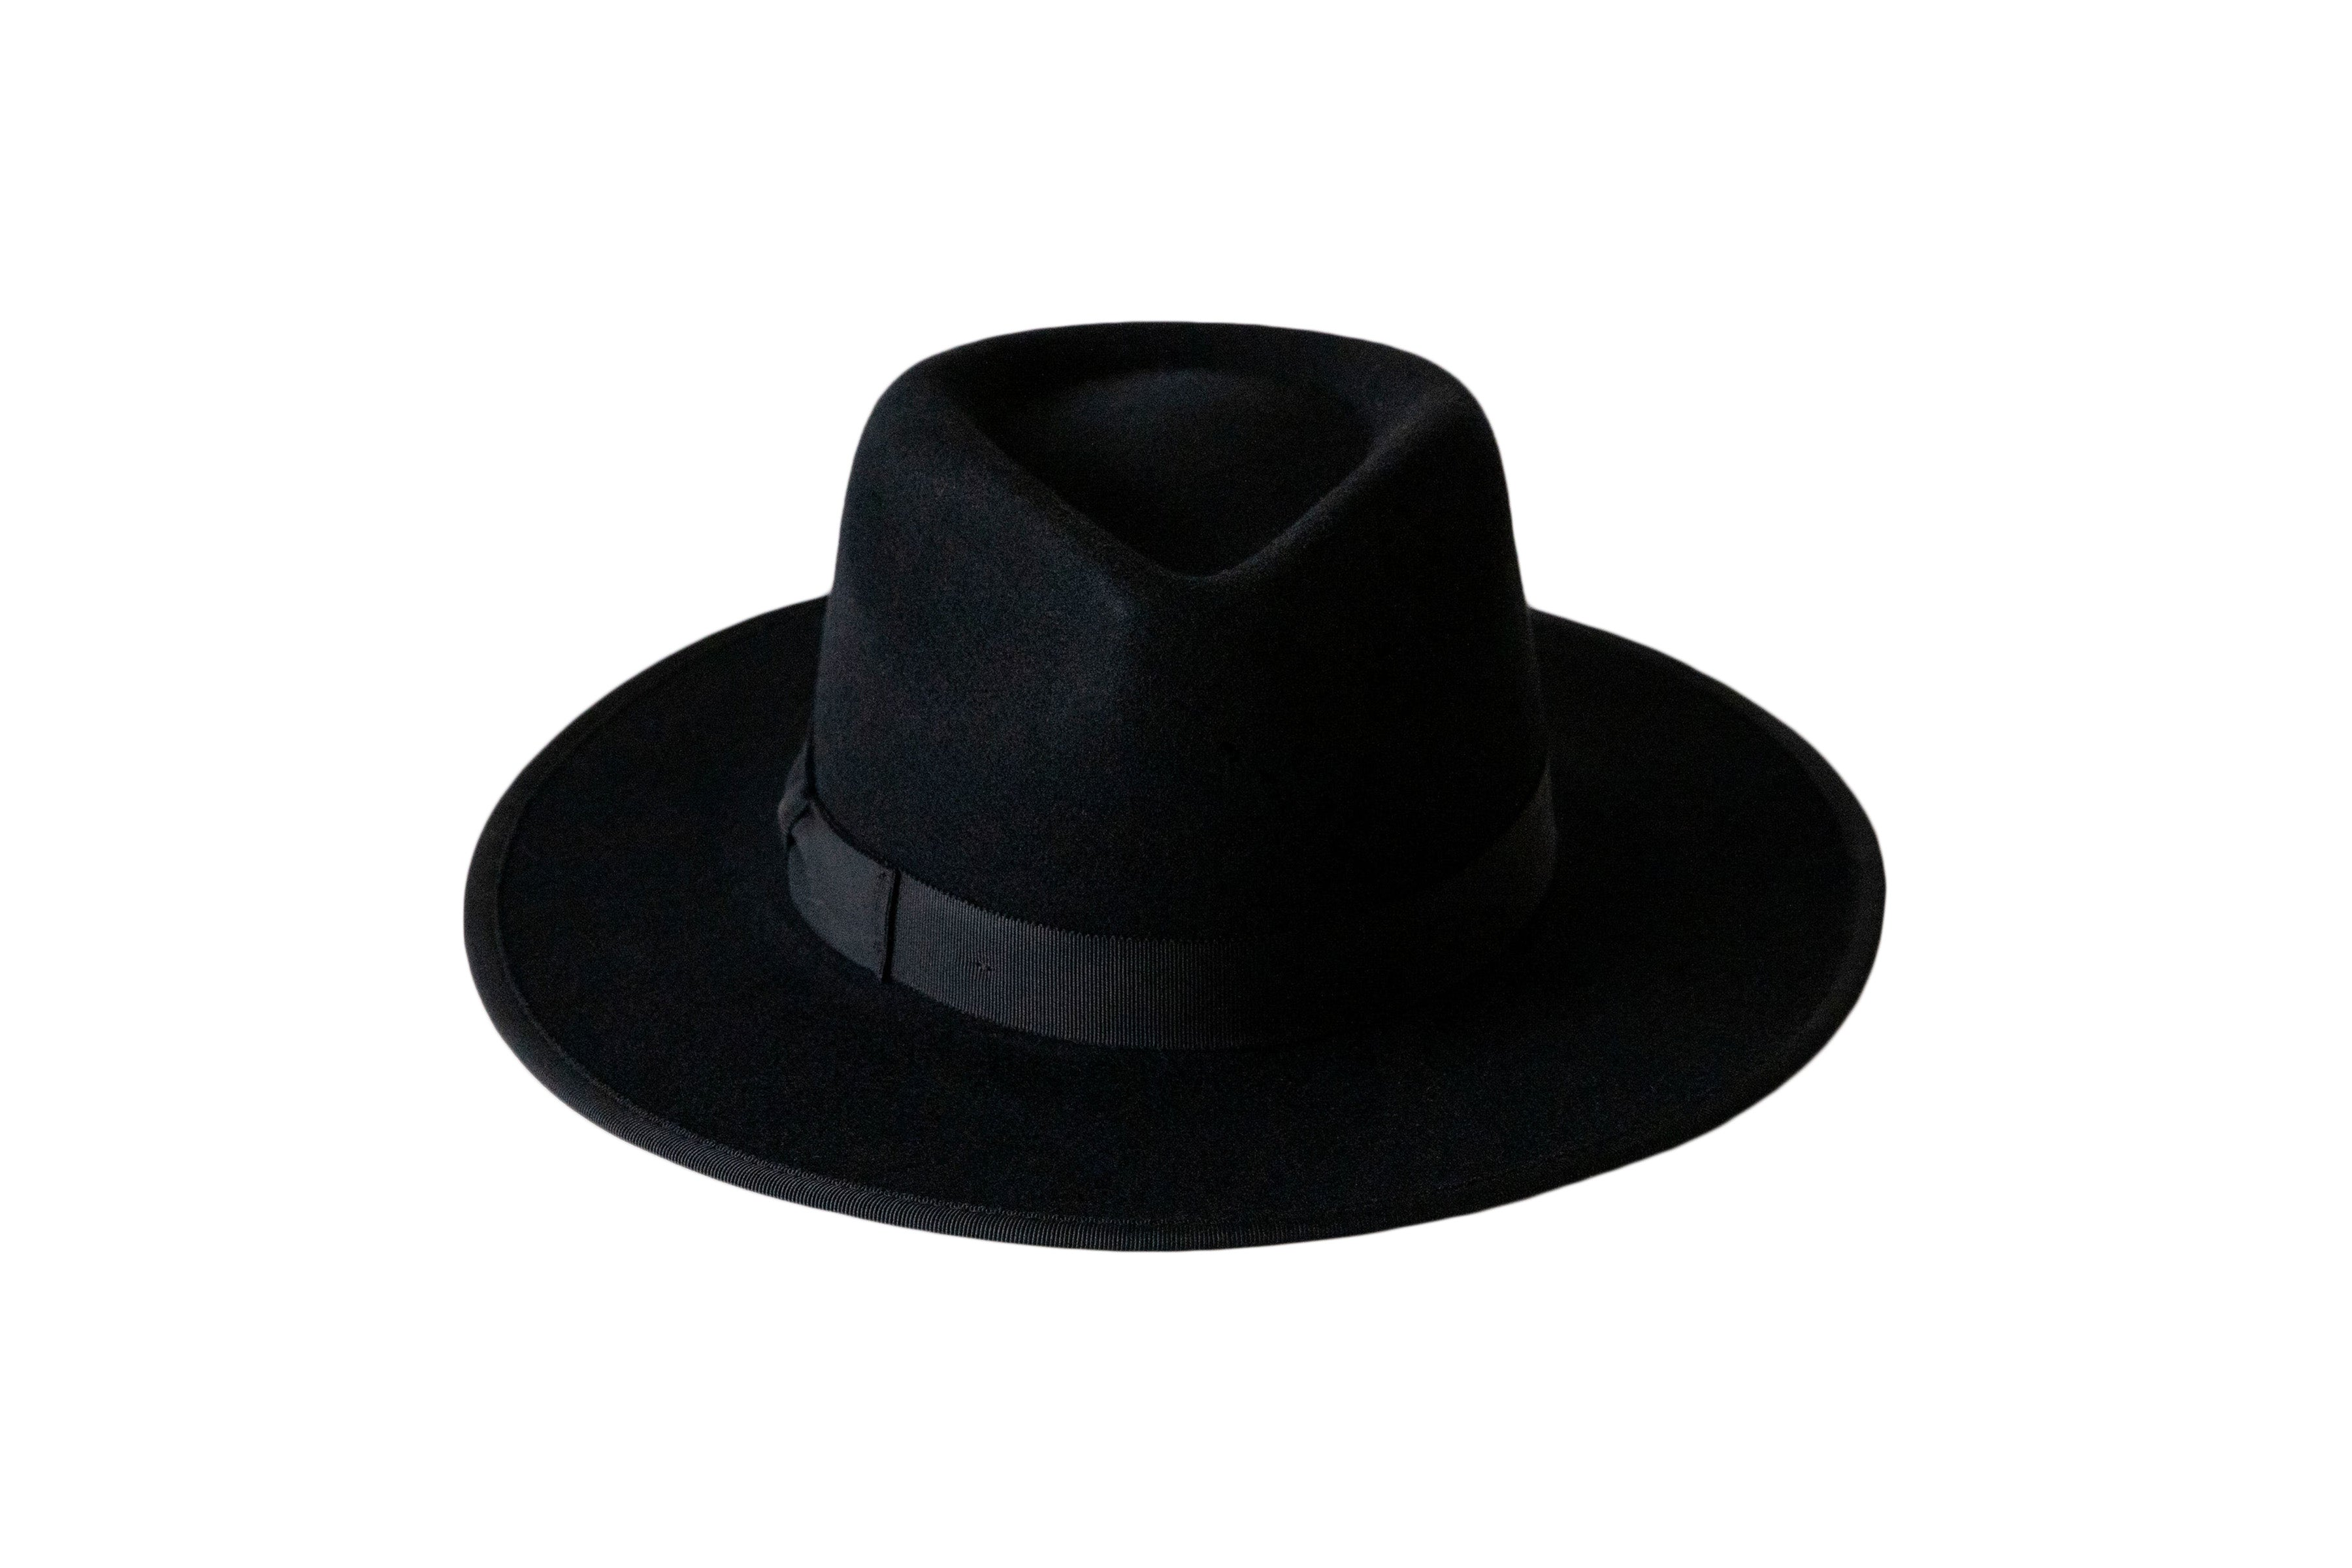 The Mick is a women's stiff black fedora with a black grosgain ribbon trimmed on the crown and the brim, detailed with a bow on the crown.